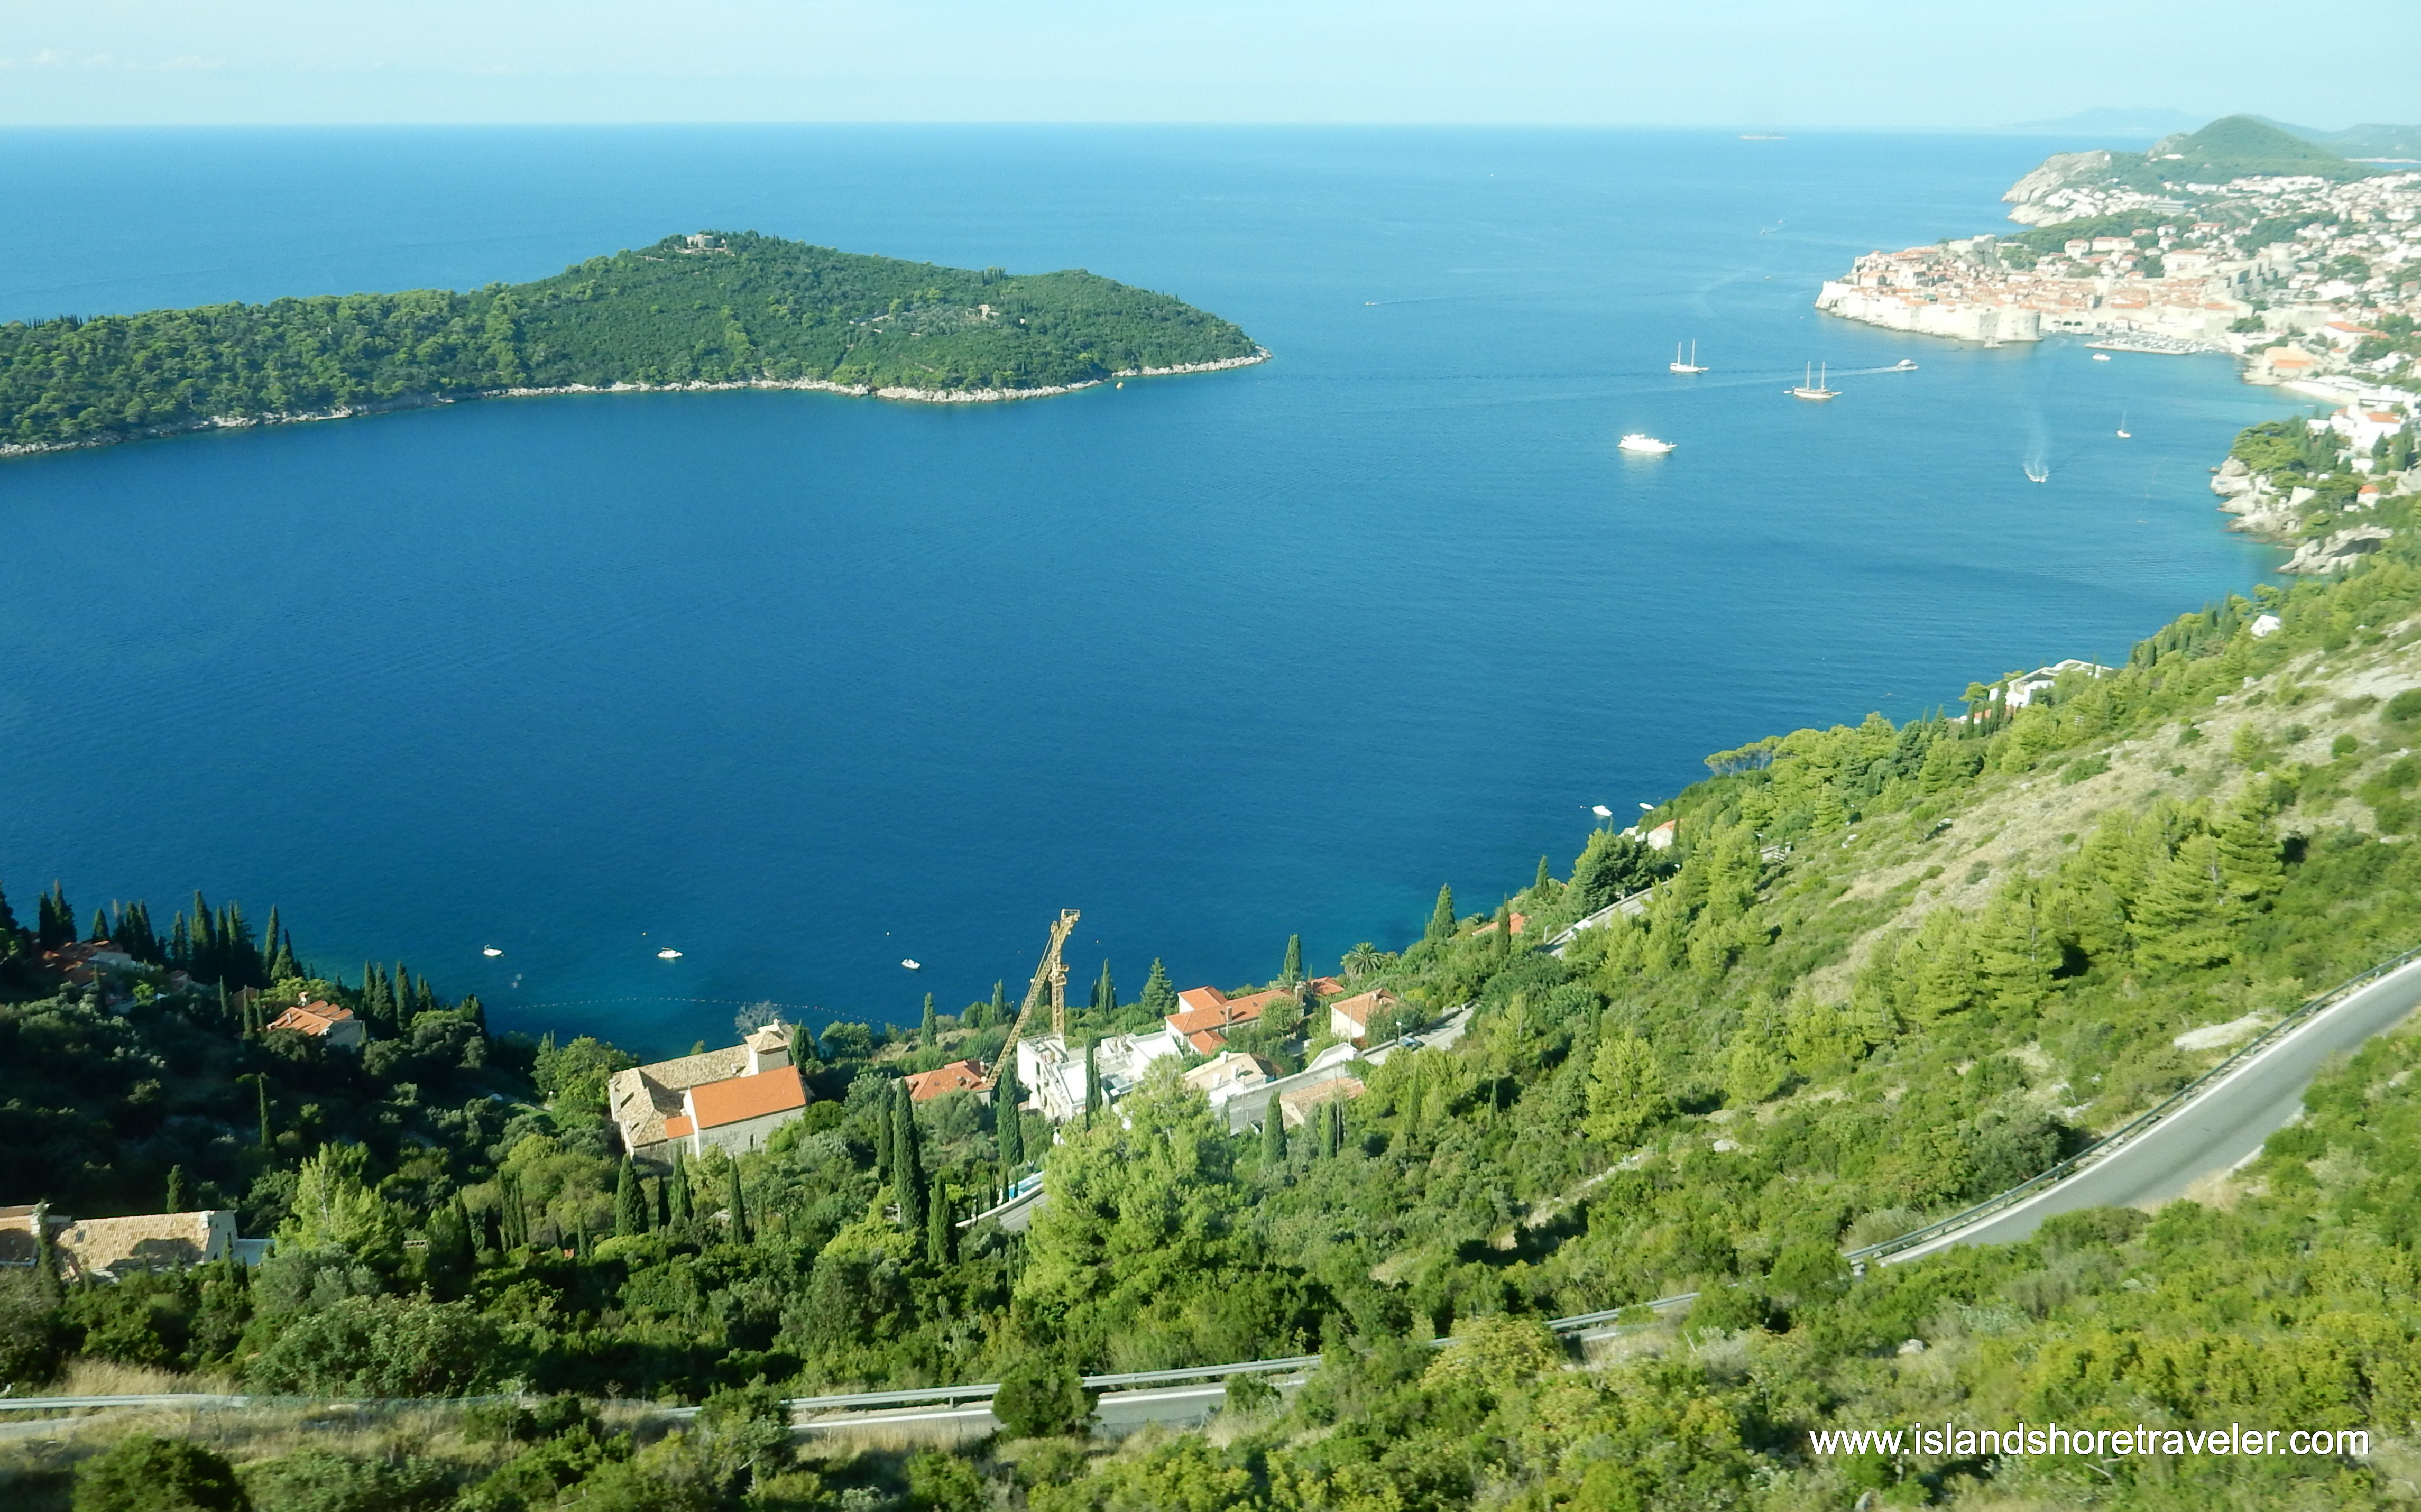 Along the Croatian Riveria between Dubrovnik and Cavtat